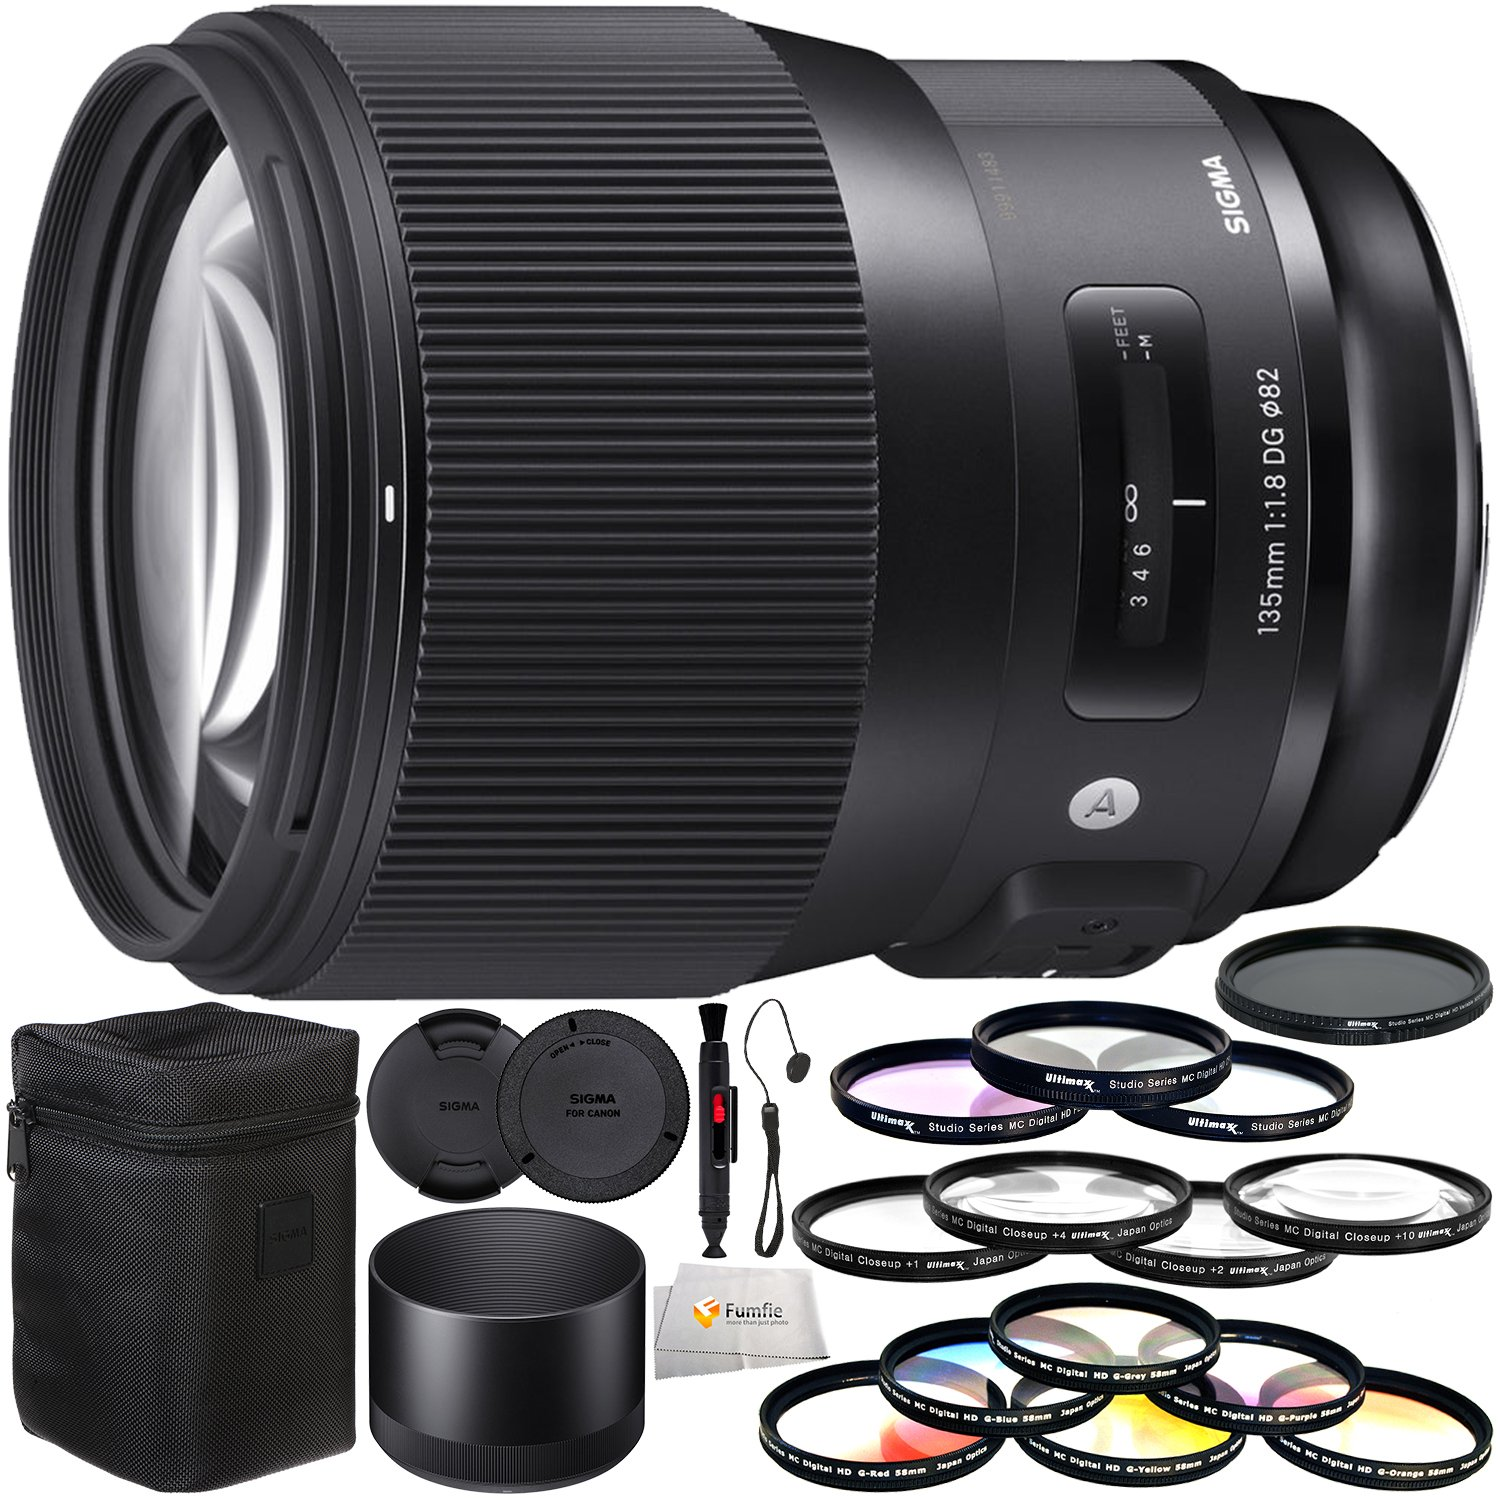 Sigma 135mm f/1.8 DG HSM Art Lens for Canon EF Includes 3PC Filter Kit (UV, CPL, FLD) + Variable Neutral Density Filter (ND2-ND400) + Lens Cleaning Pen + Lens Cap Keeper & More!